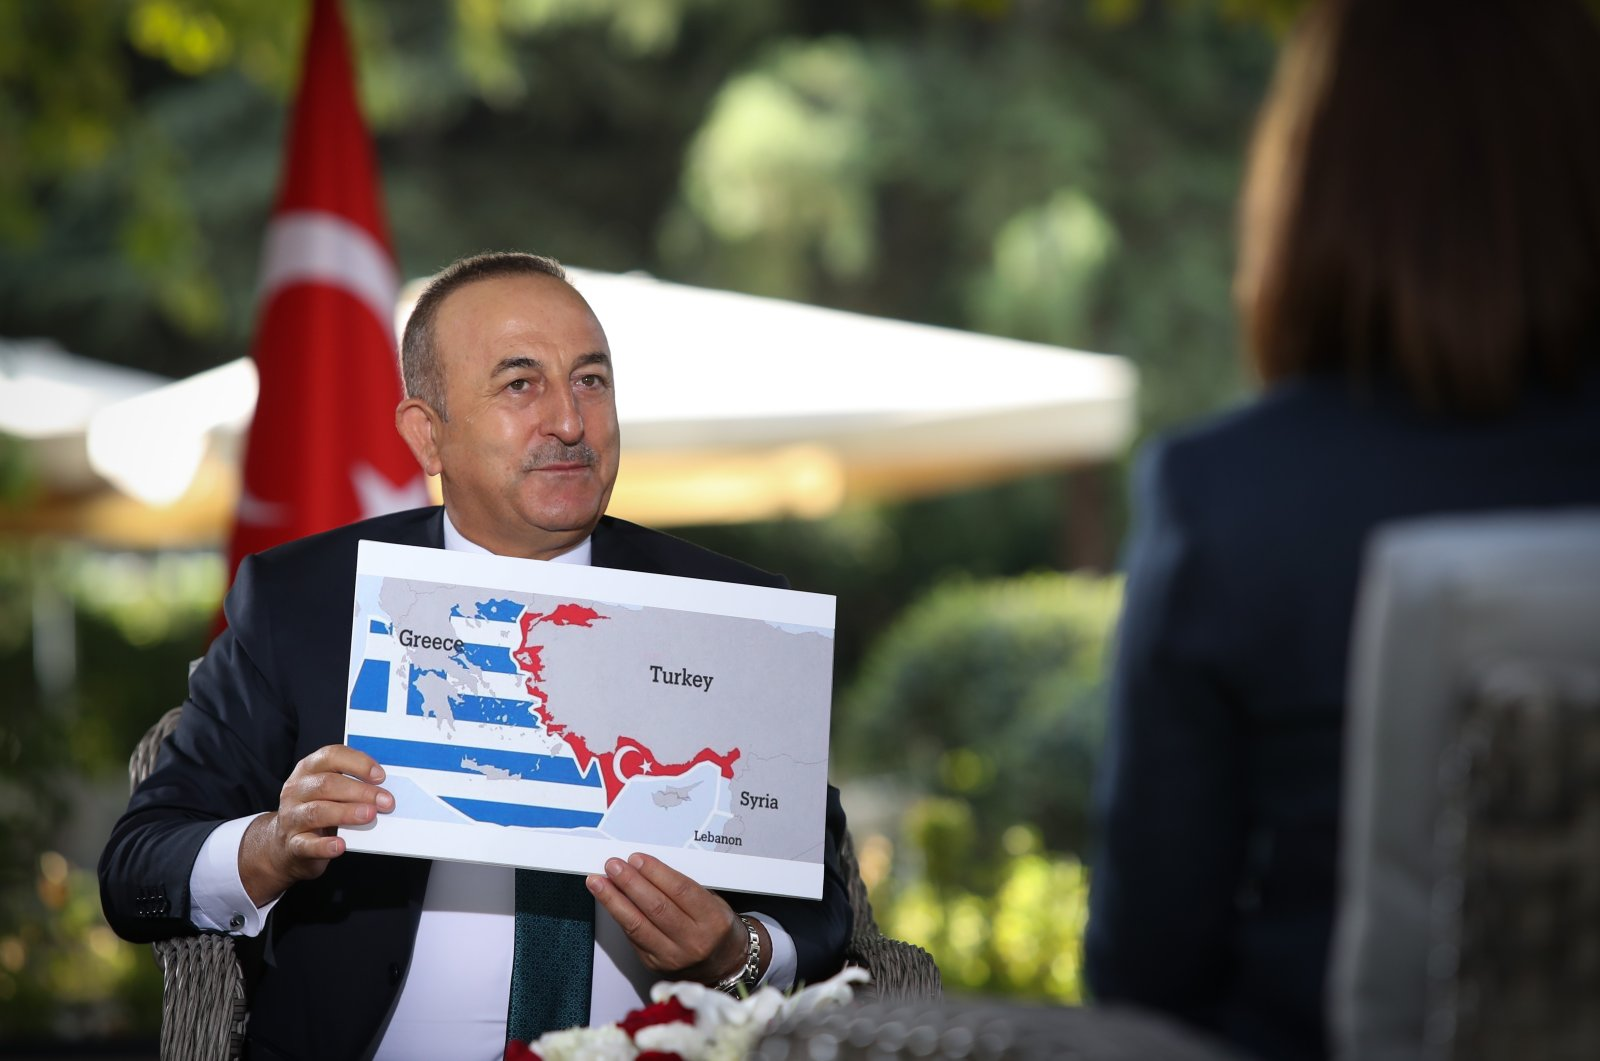 Turkish Foreign Minister Mevlüt Çavuşoğlu speaks on tensions in the Eastern Mediterranean during a televised interview with NTV, Sept. 14, 2020. (AA Photo)